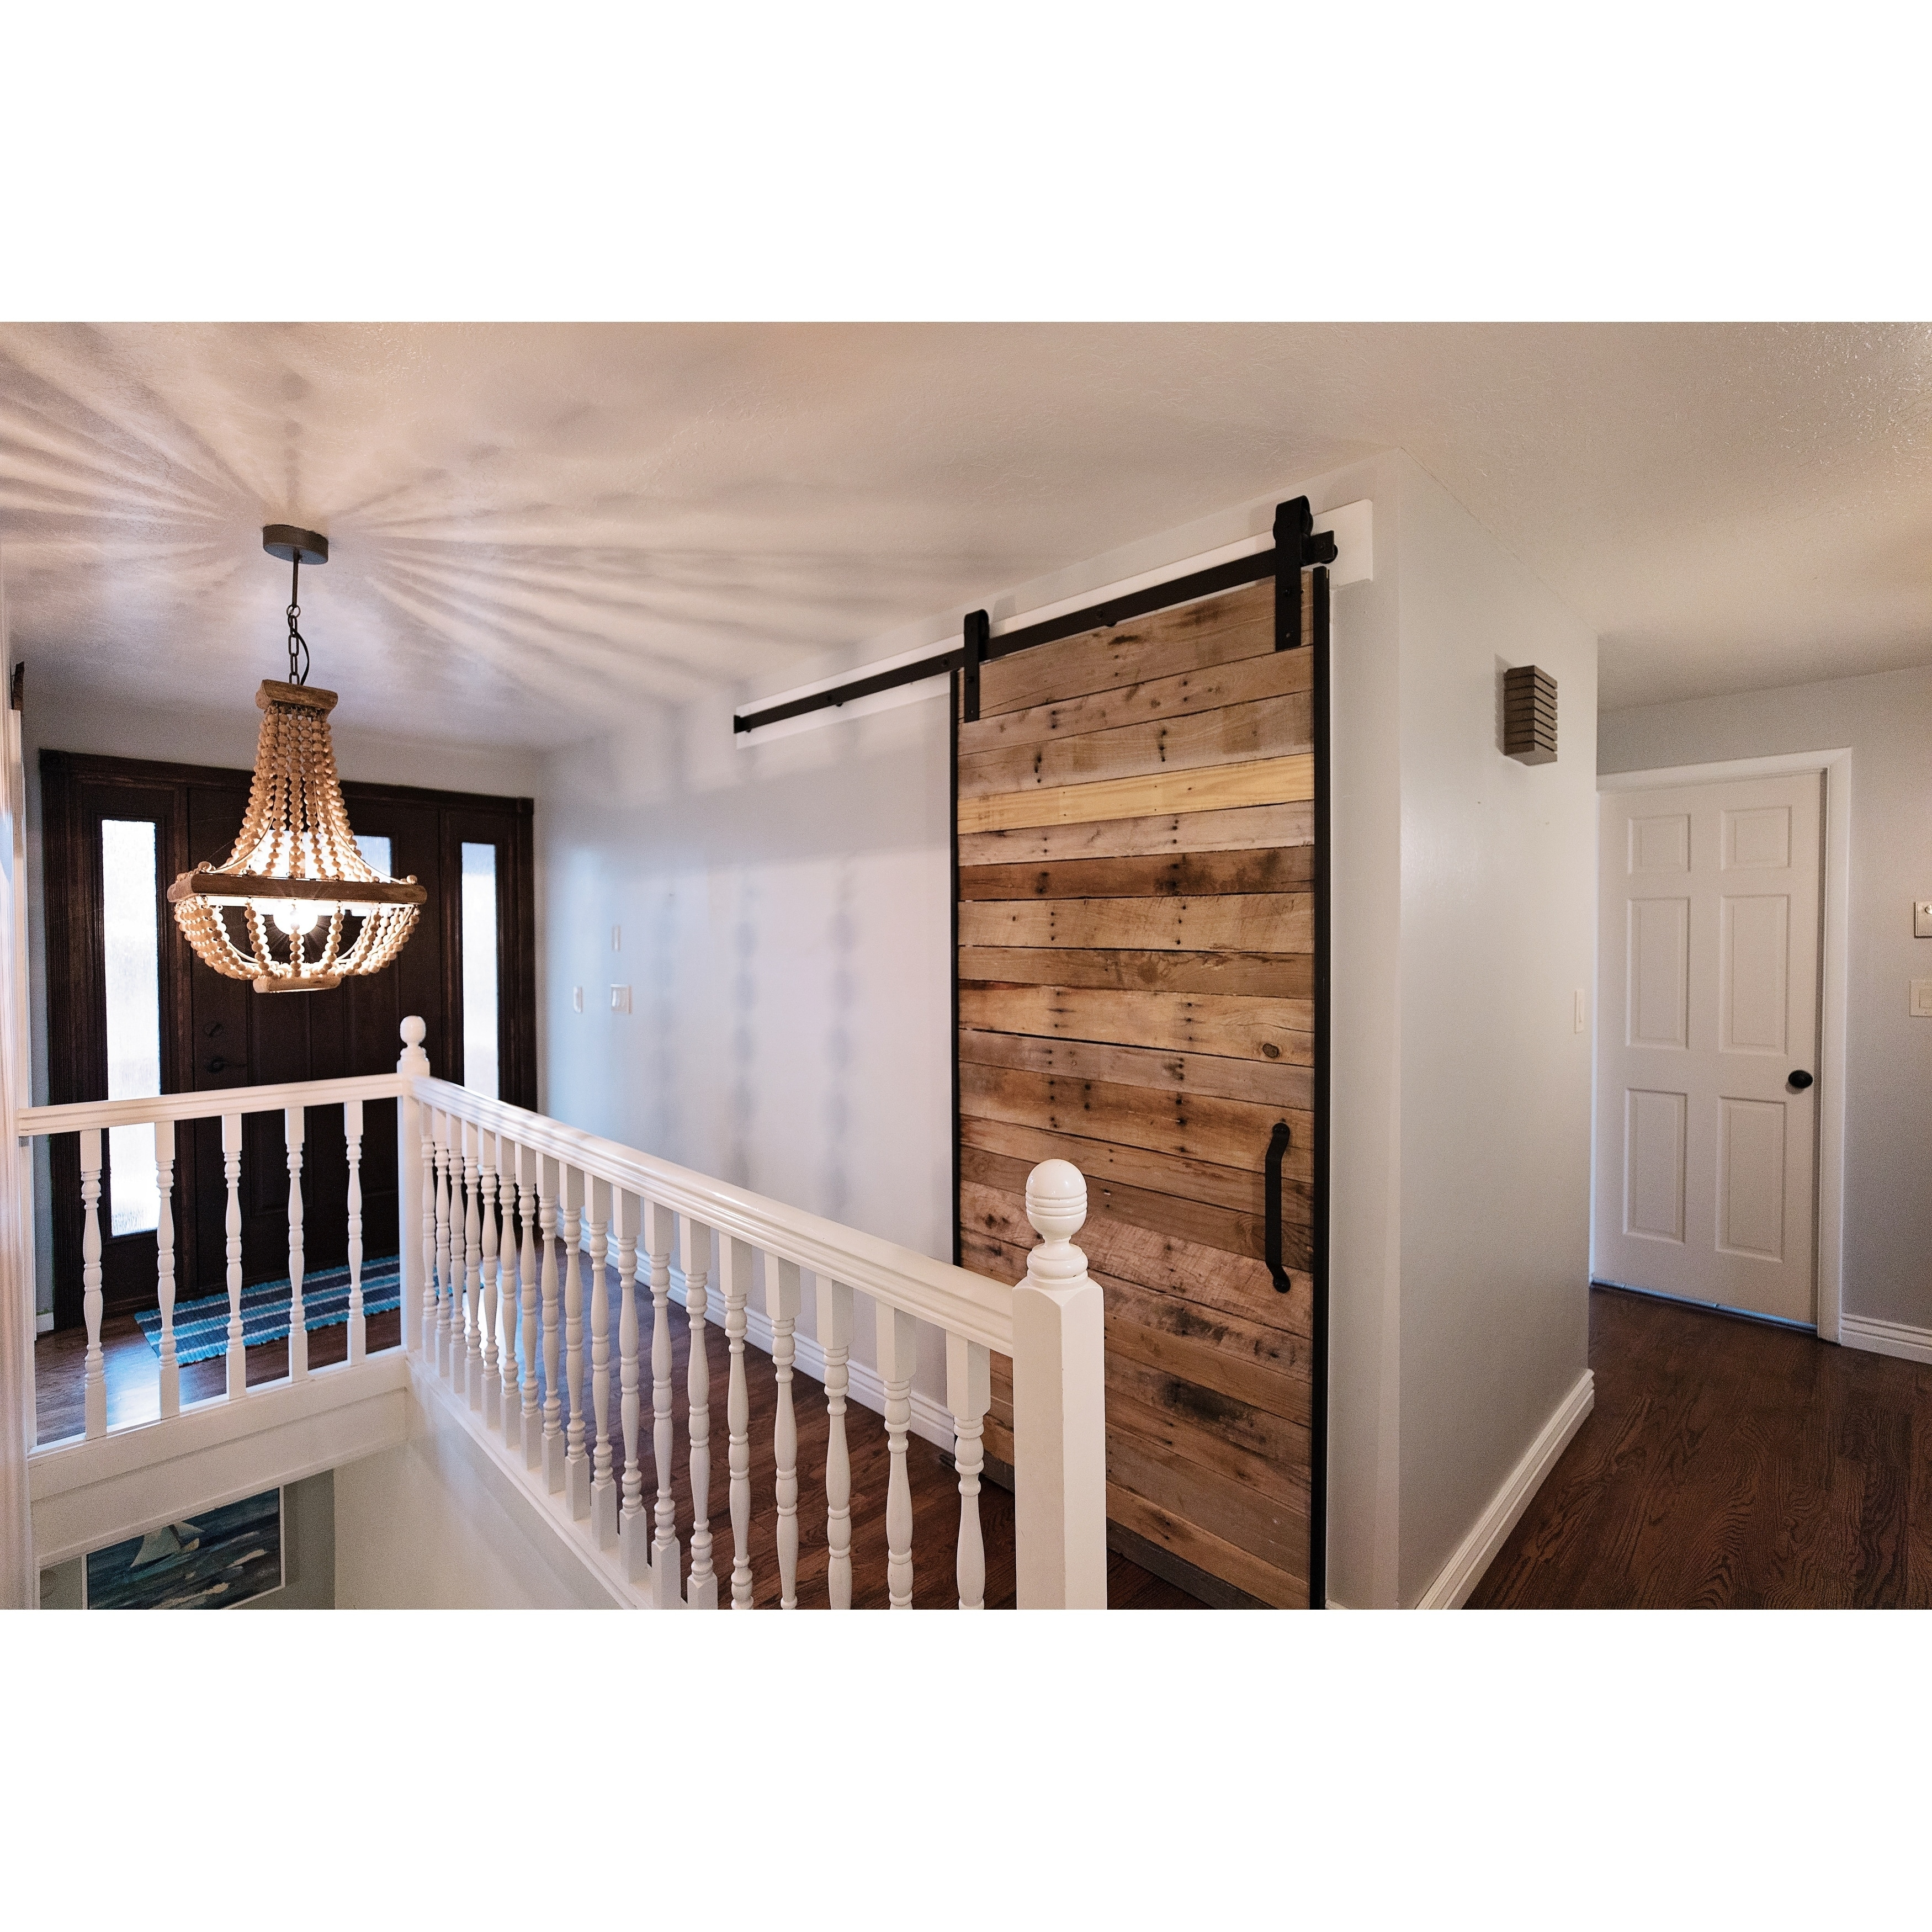 Diy Barn Door Frame And Hardware Kit Free Shipping Today